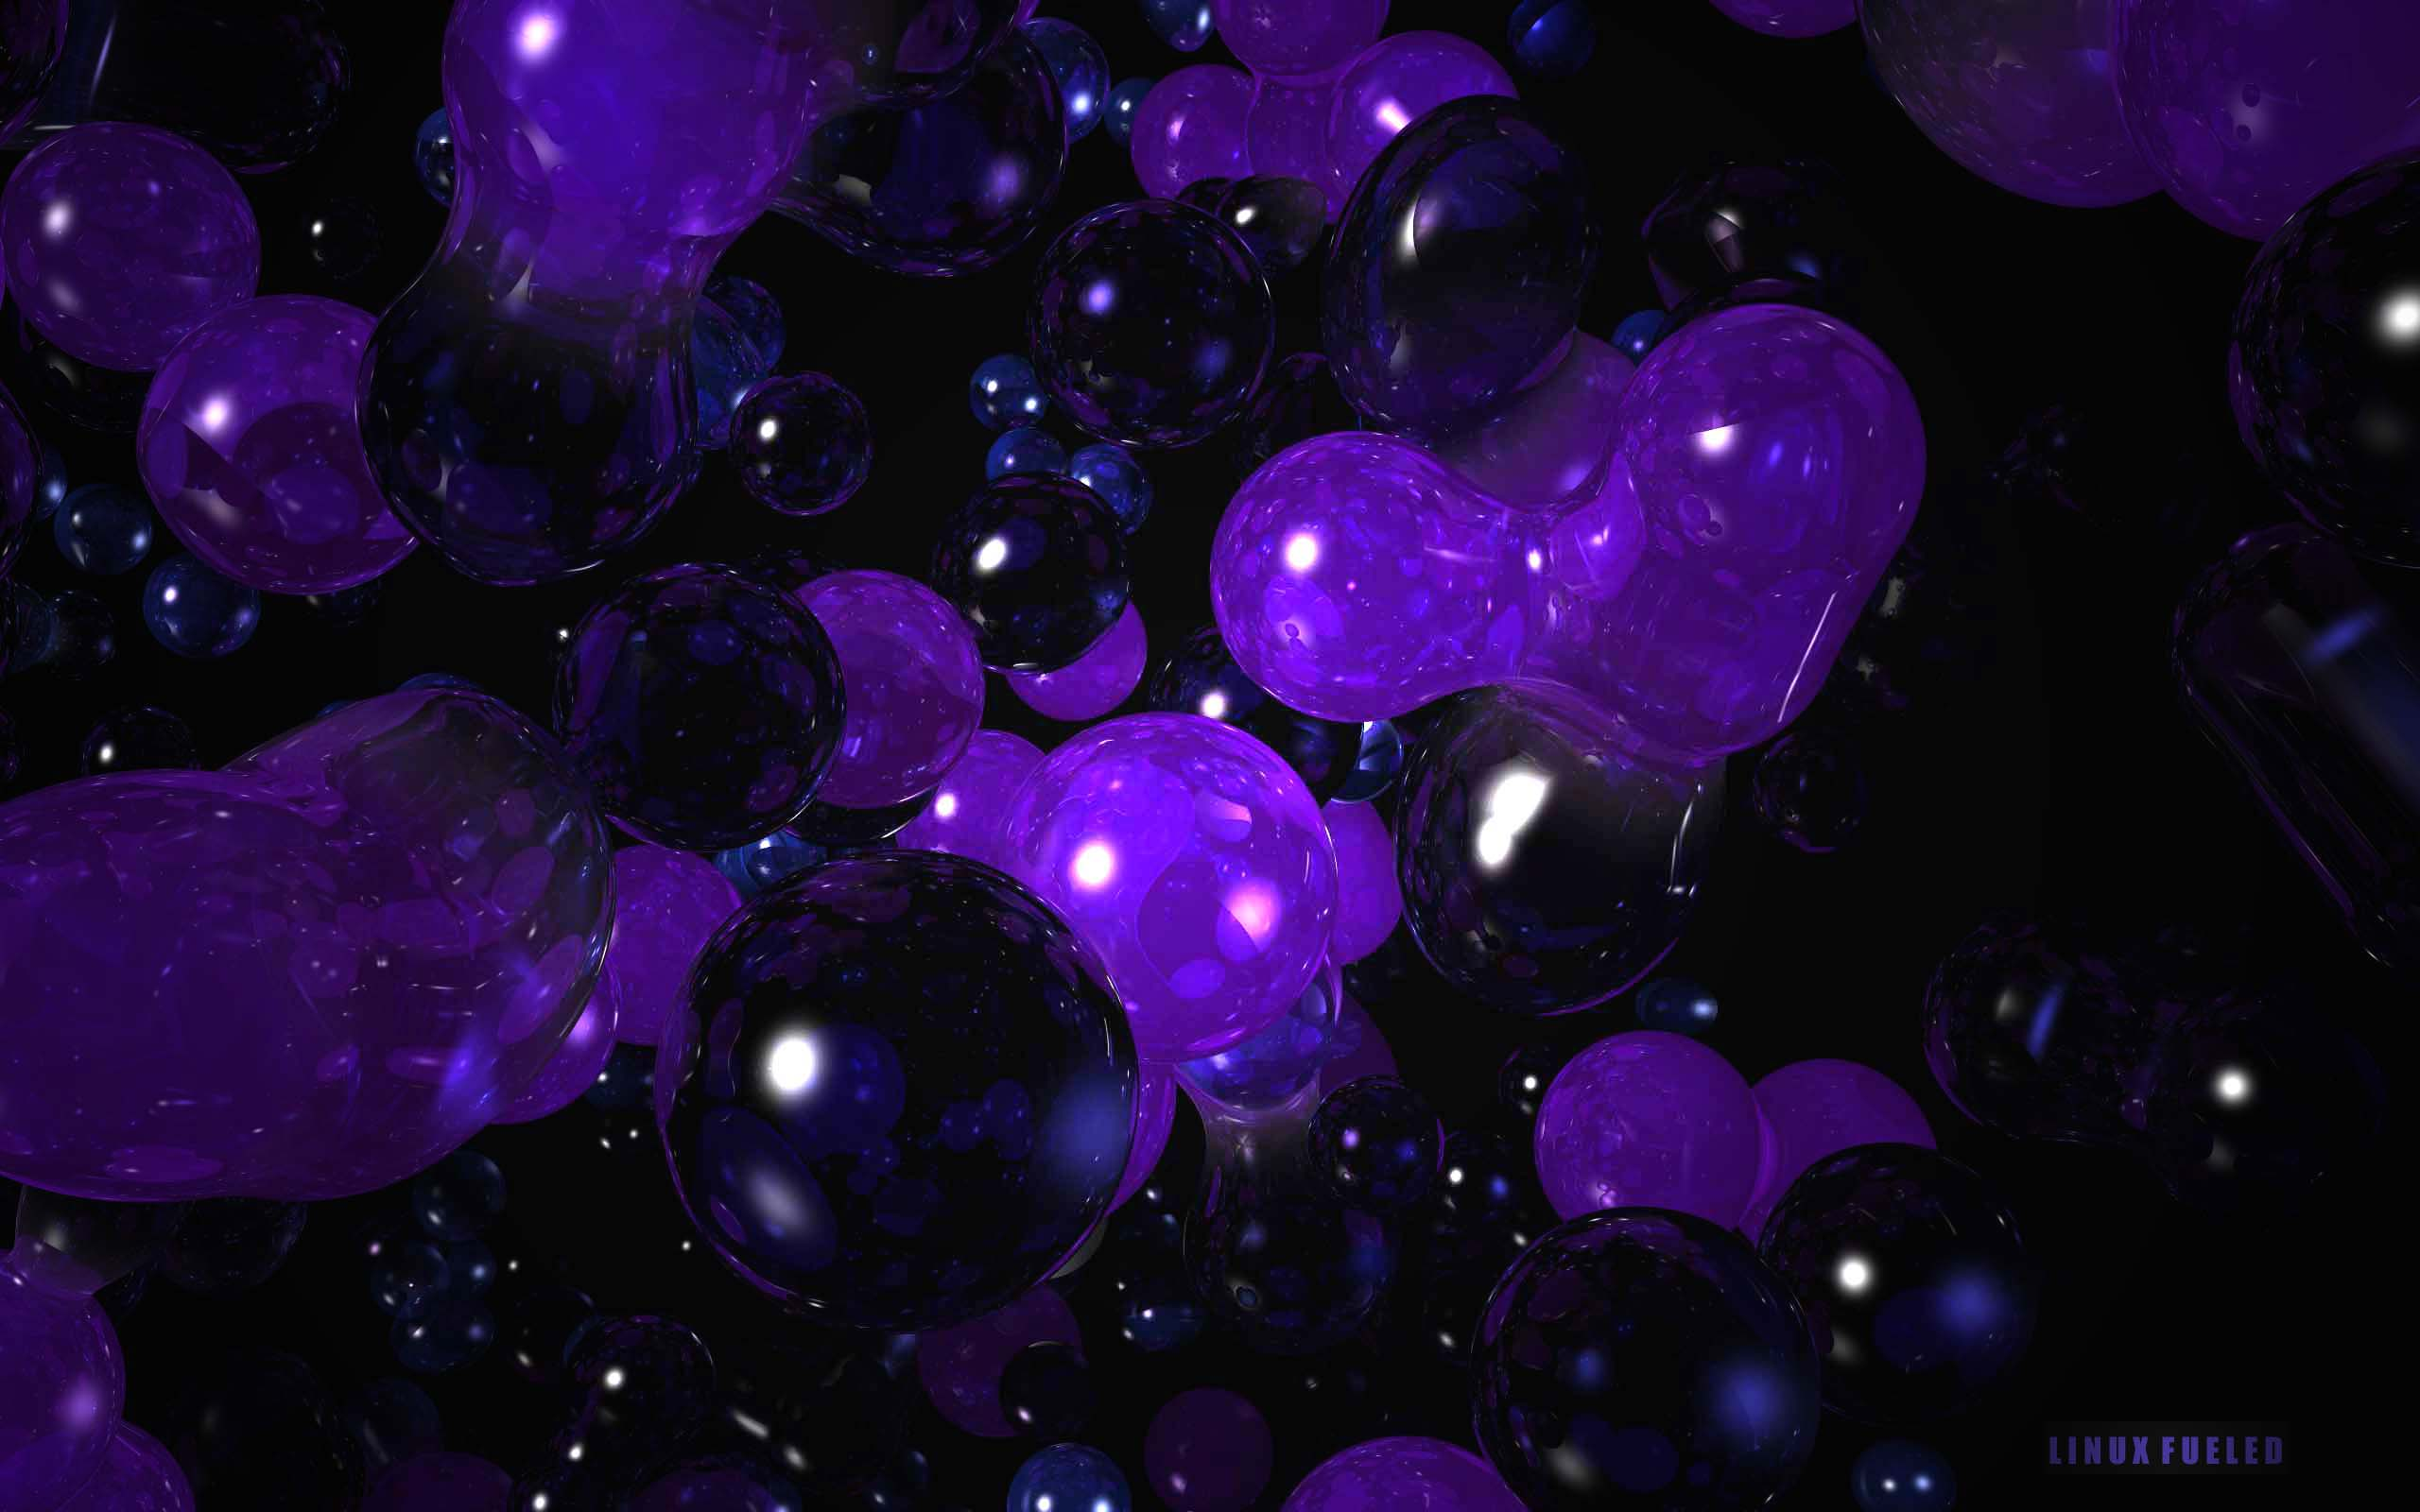 Black And Purple Abstract Widescreen Hd Wallpaper 512: Purple Wallpapers, Pictures, Images